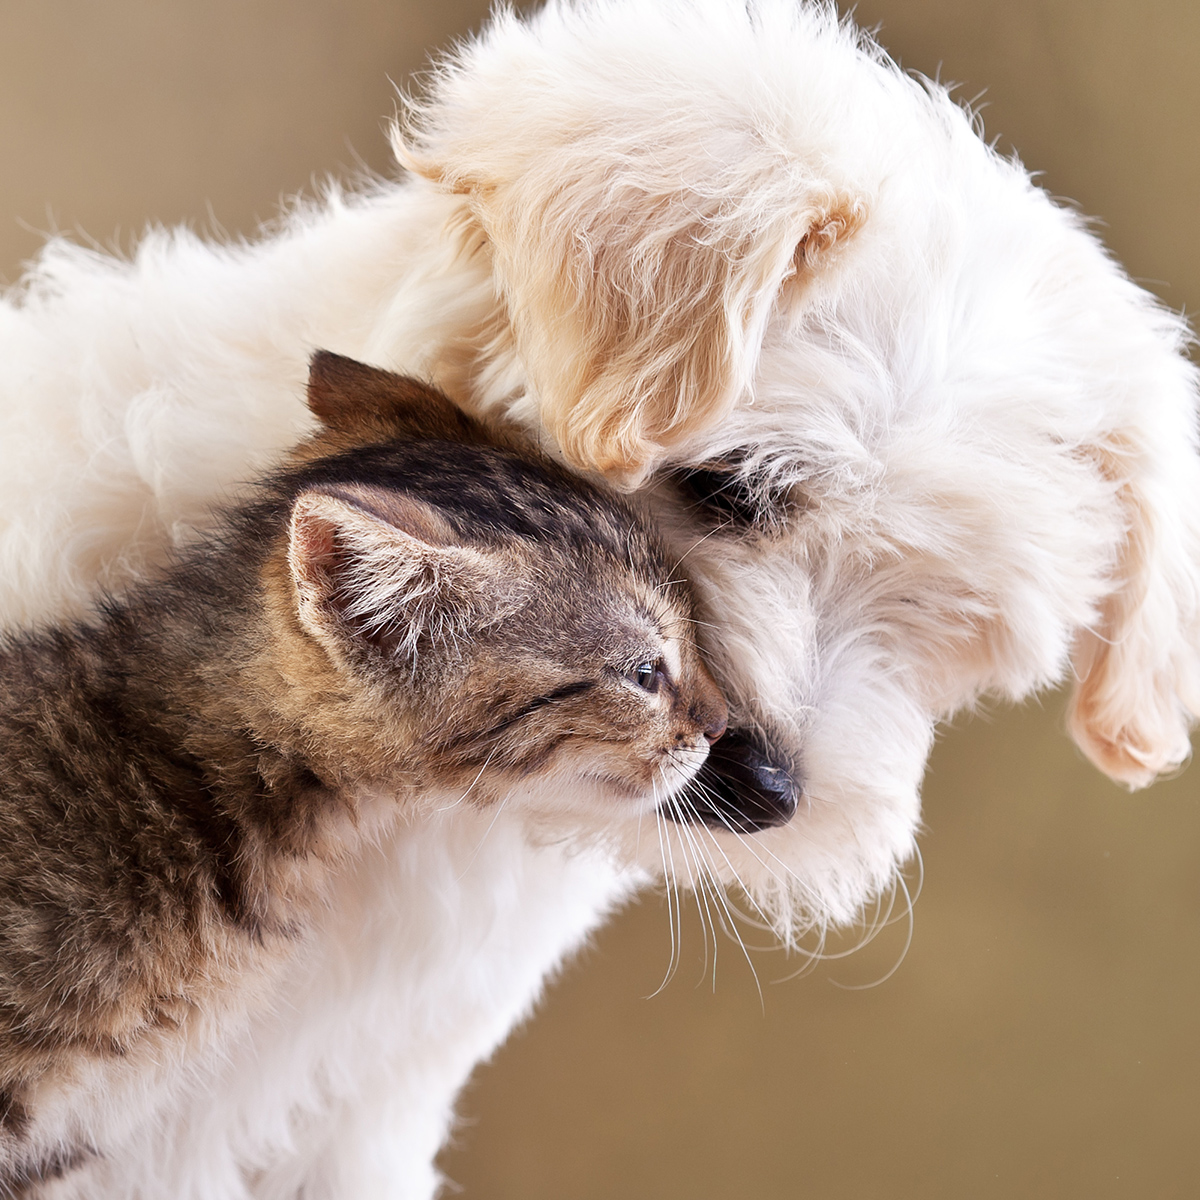 FREE Puppy/Kitten Core Vaccines